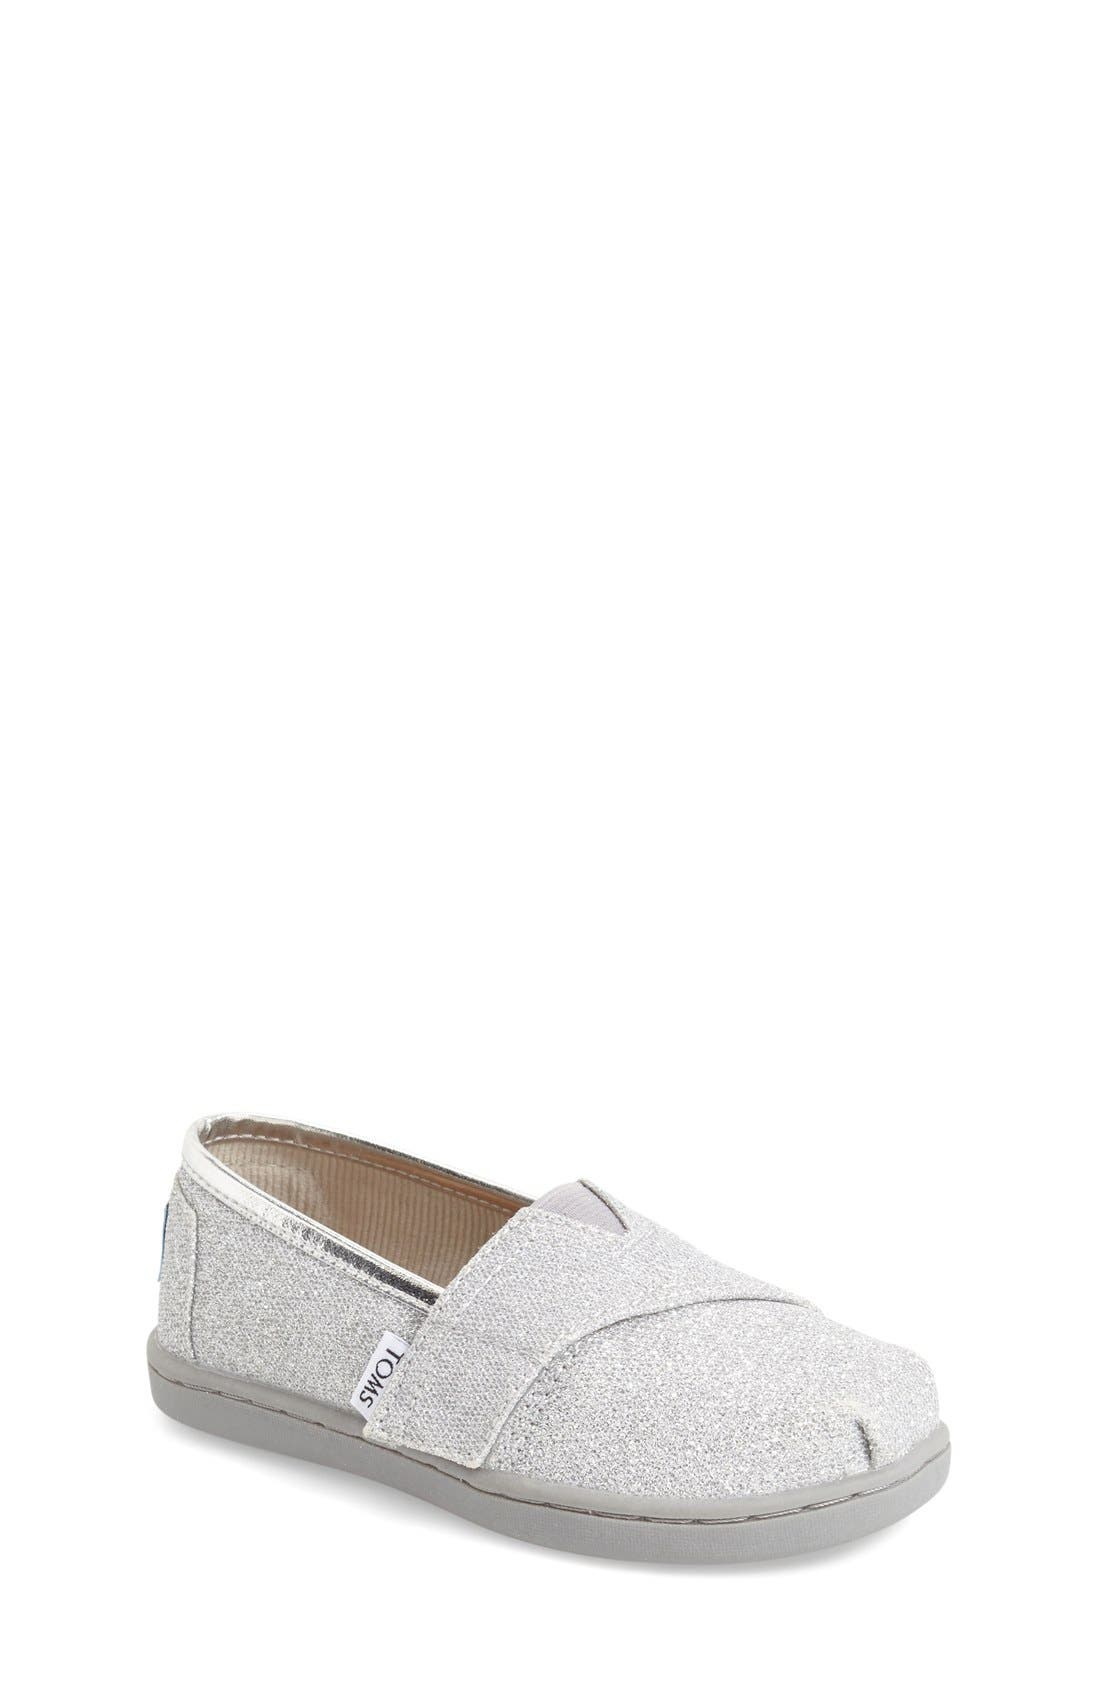 Main Image - TOMS 'Classic Tiny - Glimmer' Slip-On (Baby, Walker & Toddler)